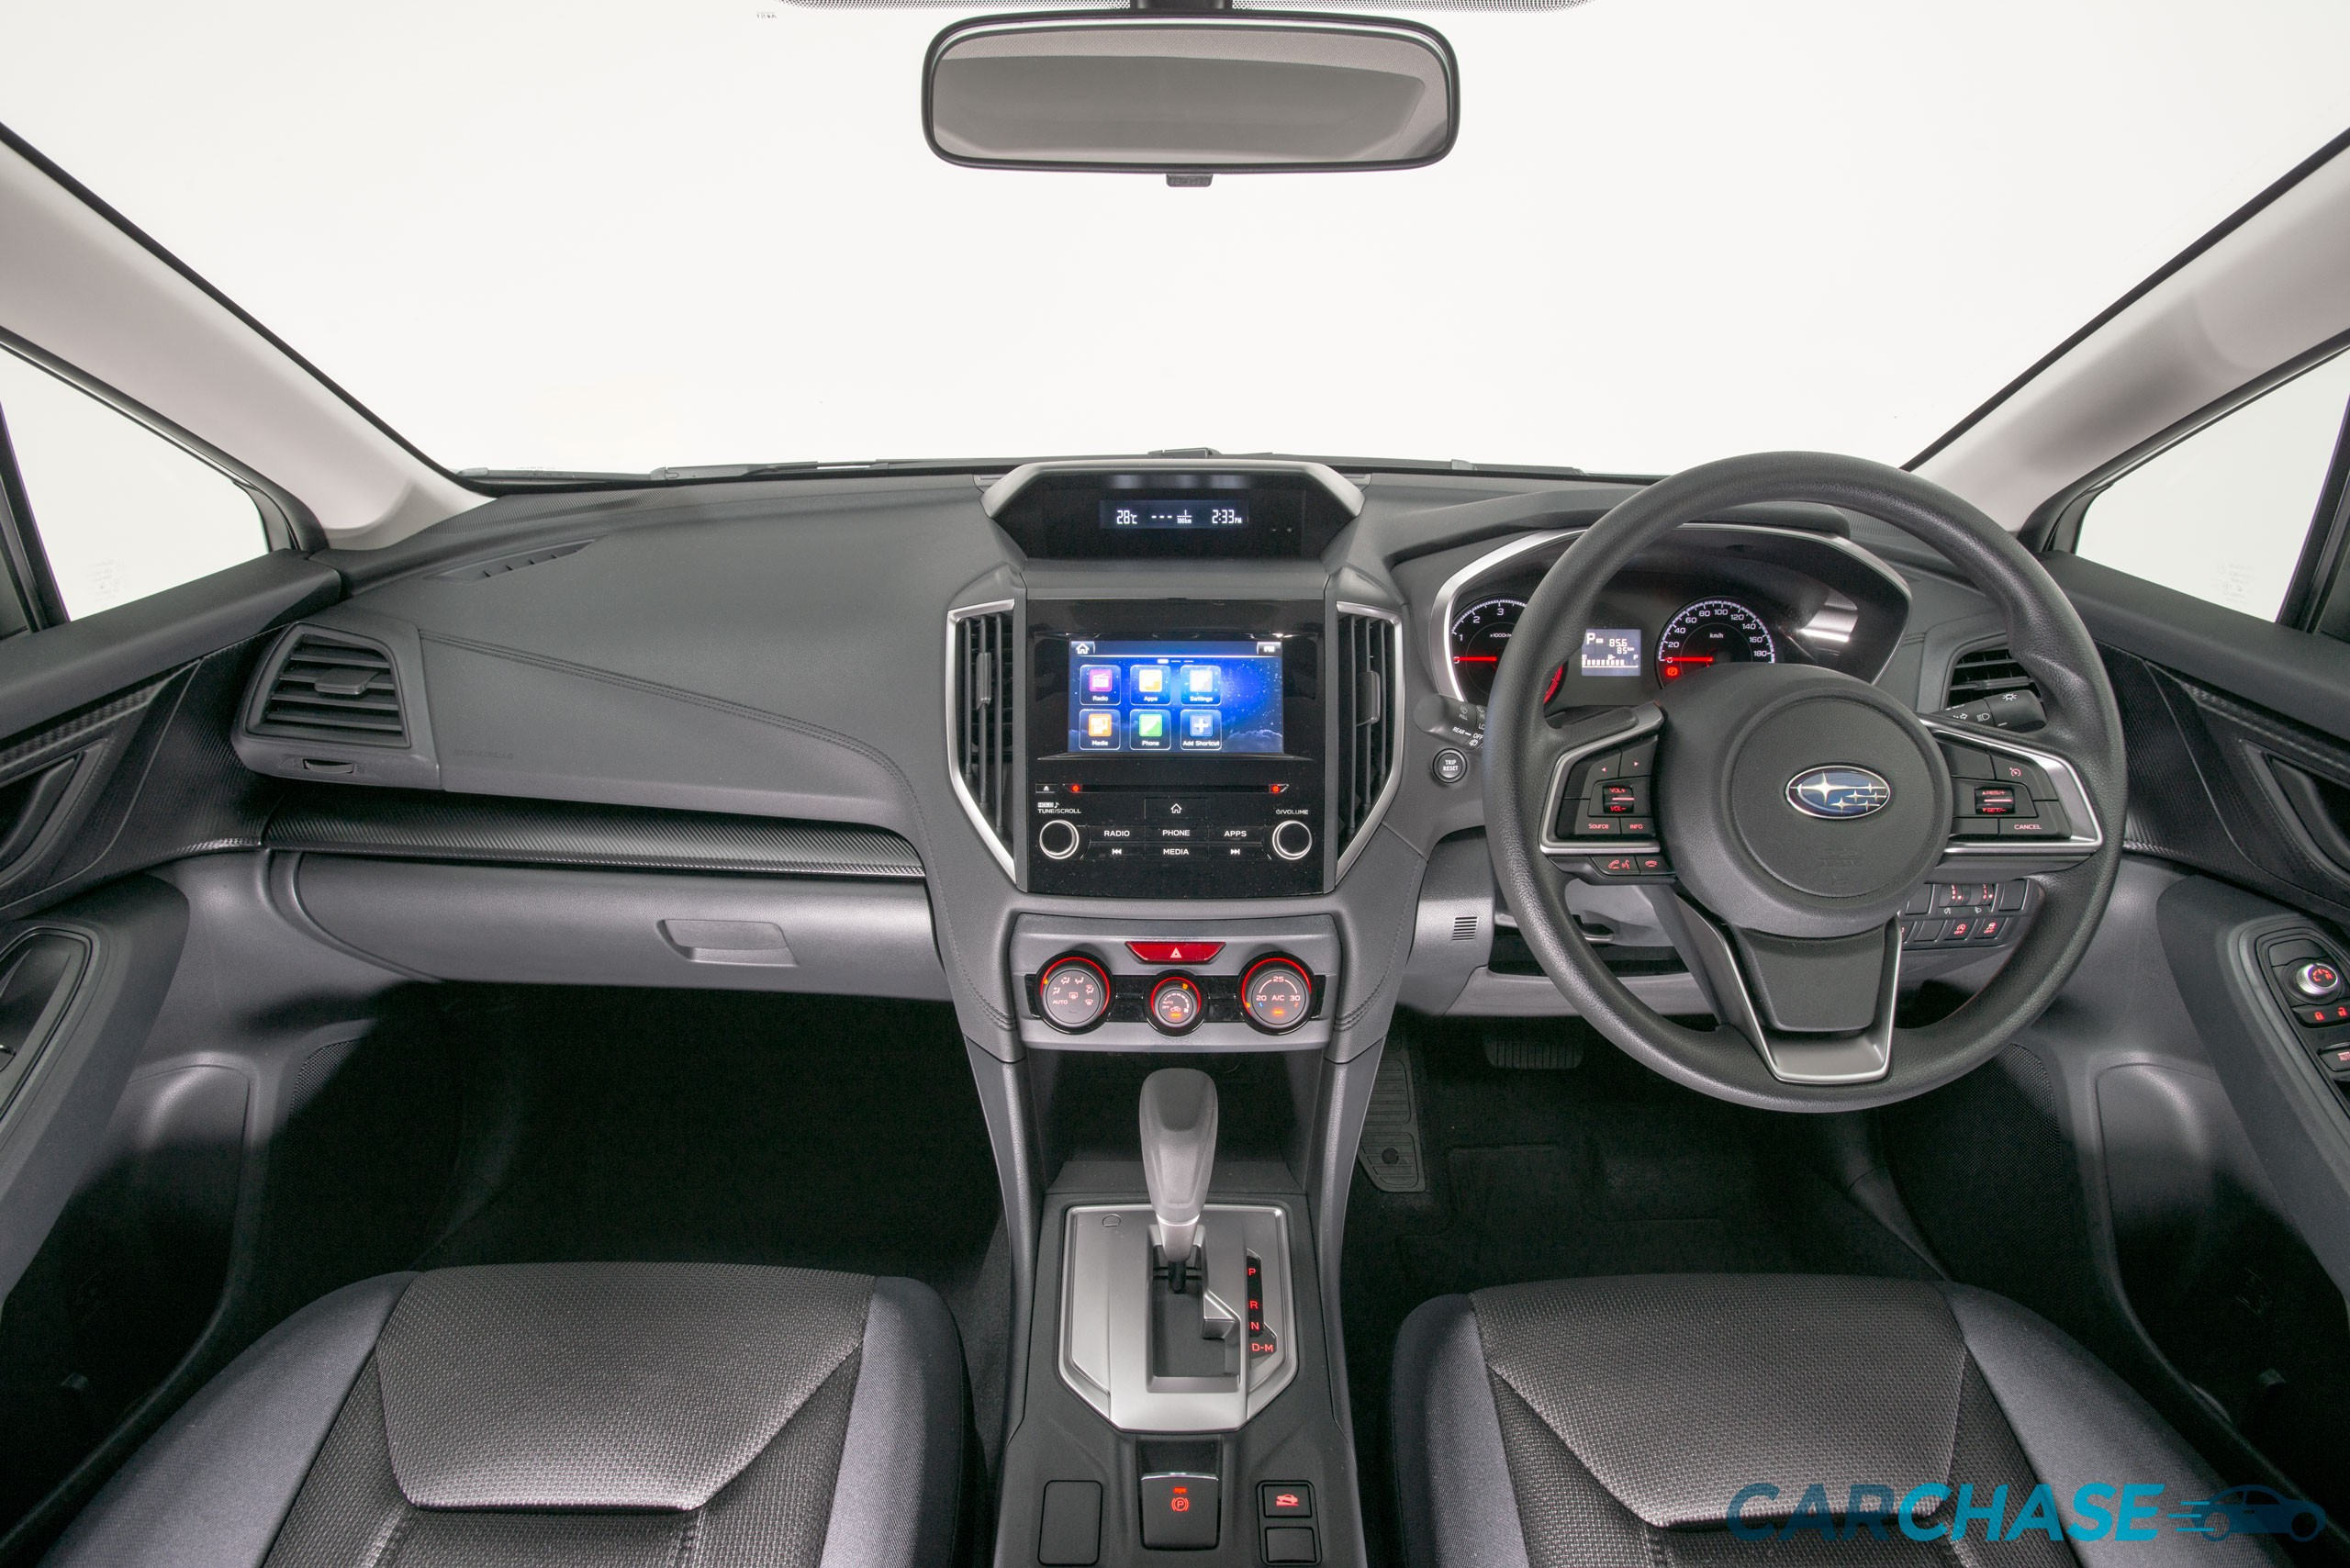 Image of dashboard profile of 2018 Subaru Impreza 2.0i